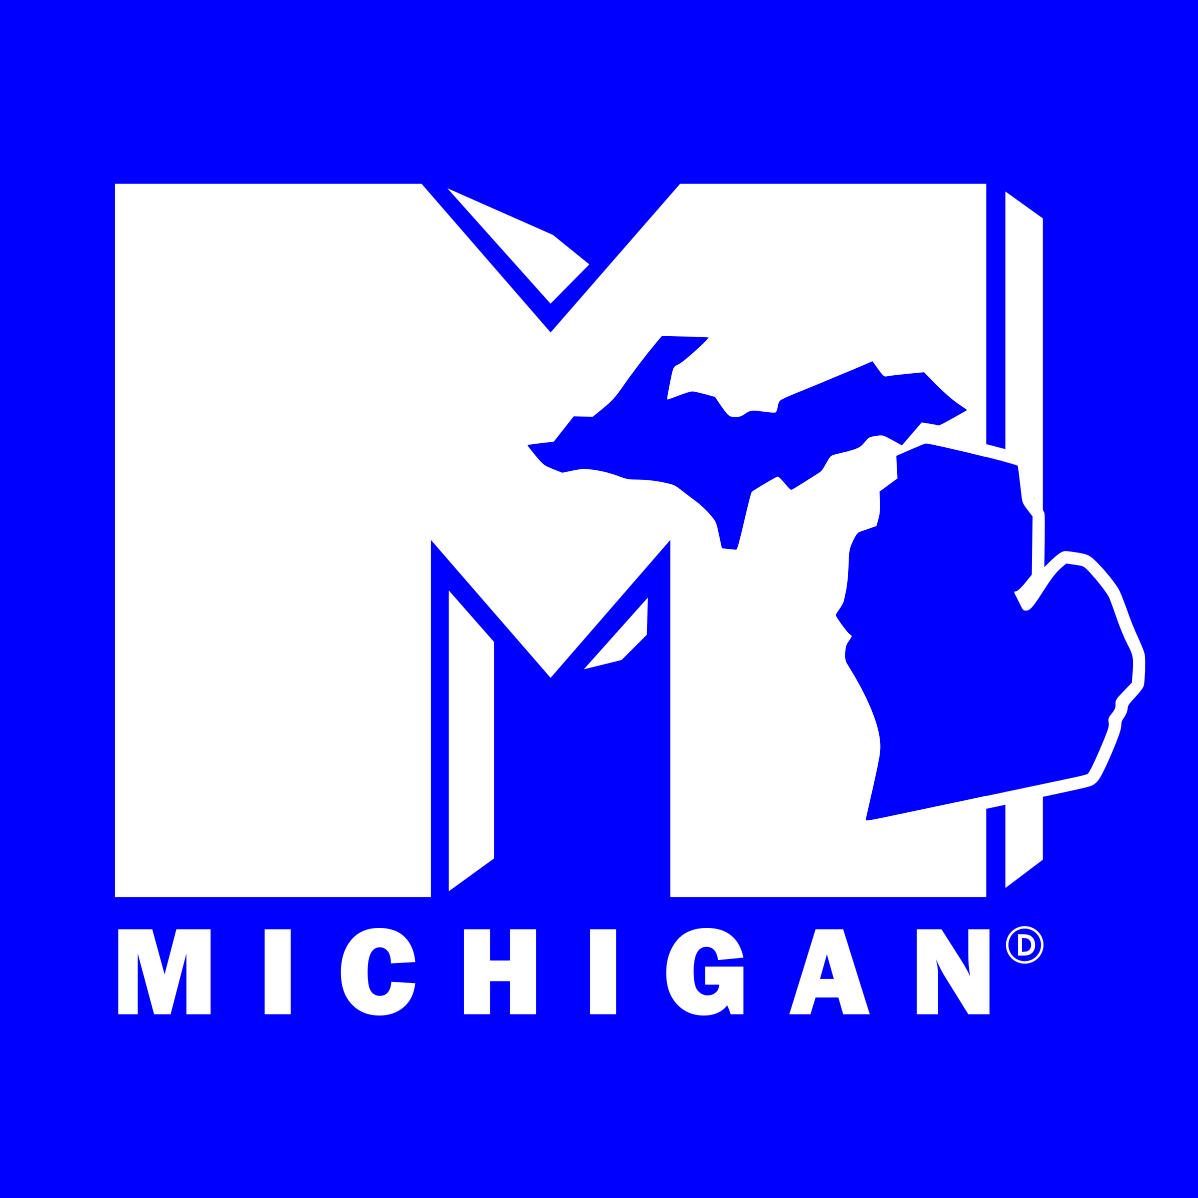 michigan small.png